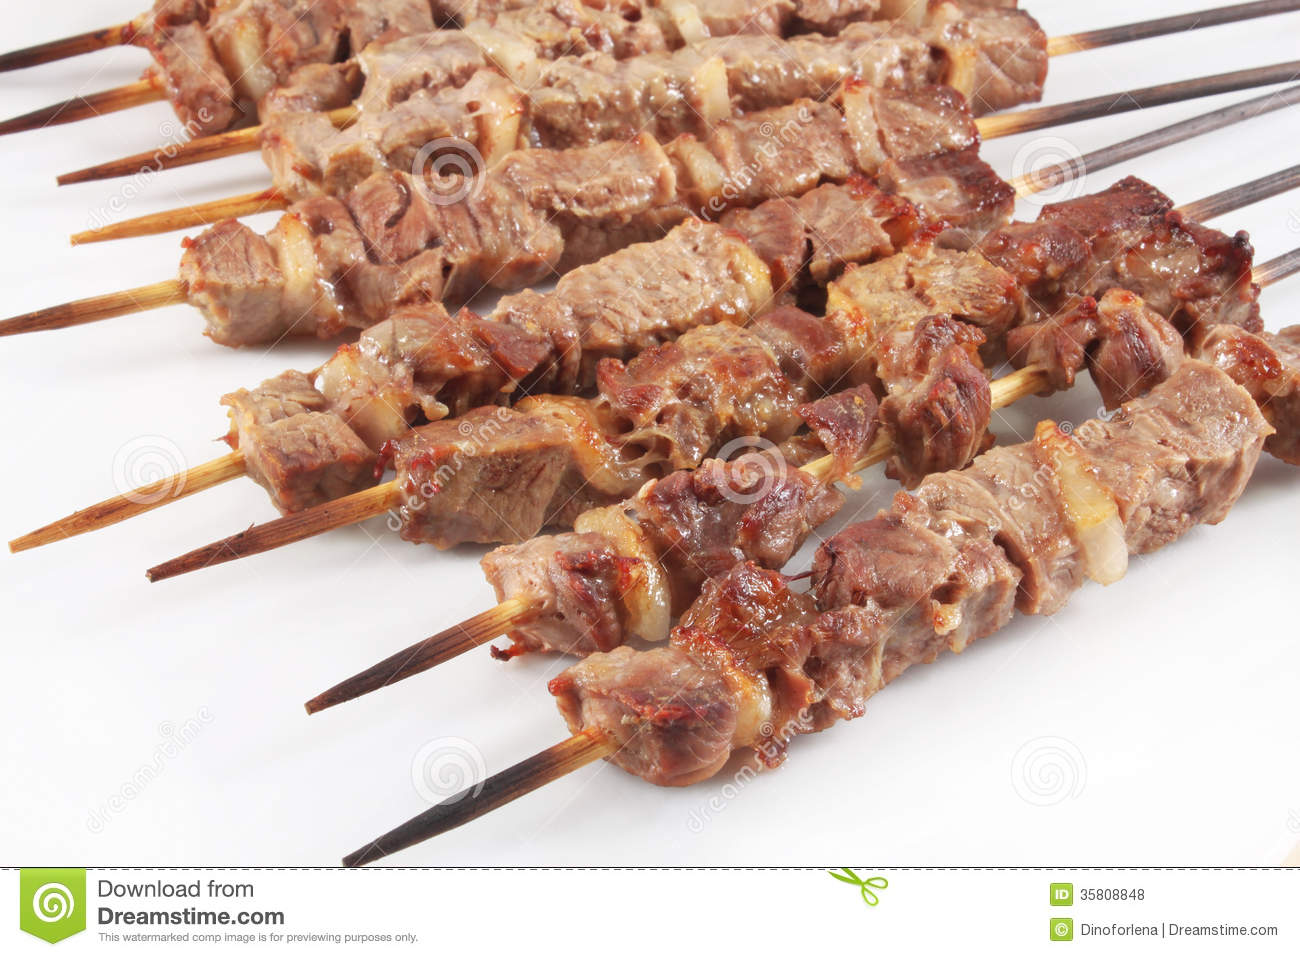 Lamb on skewers stock photo. Image of roasted, gourmet - 35808848 for Cooked Lamb Meat  75sfw